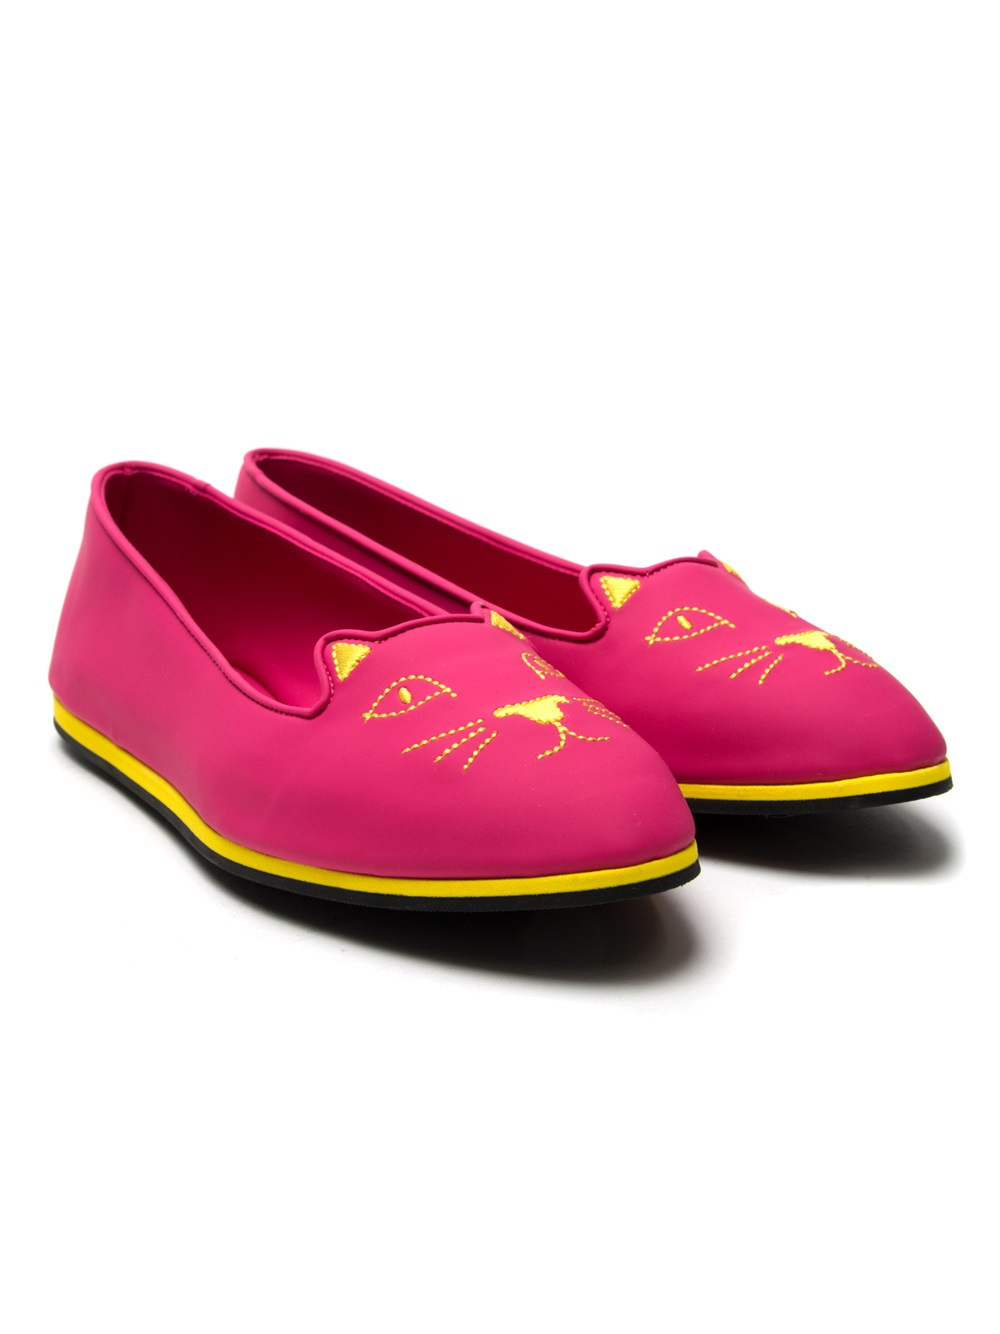 Charlotte Olympia Kitty Suede Flats In Pink Lyst